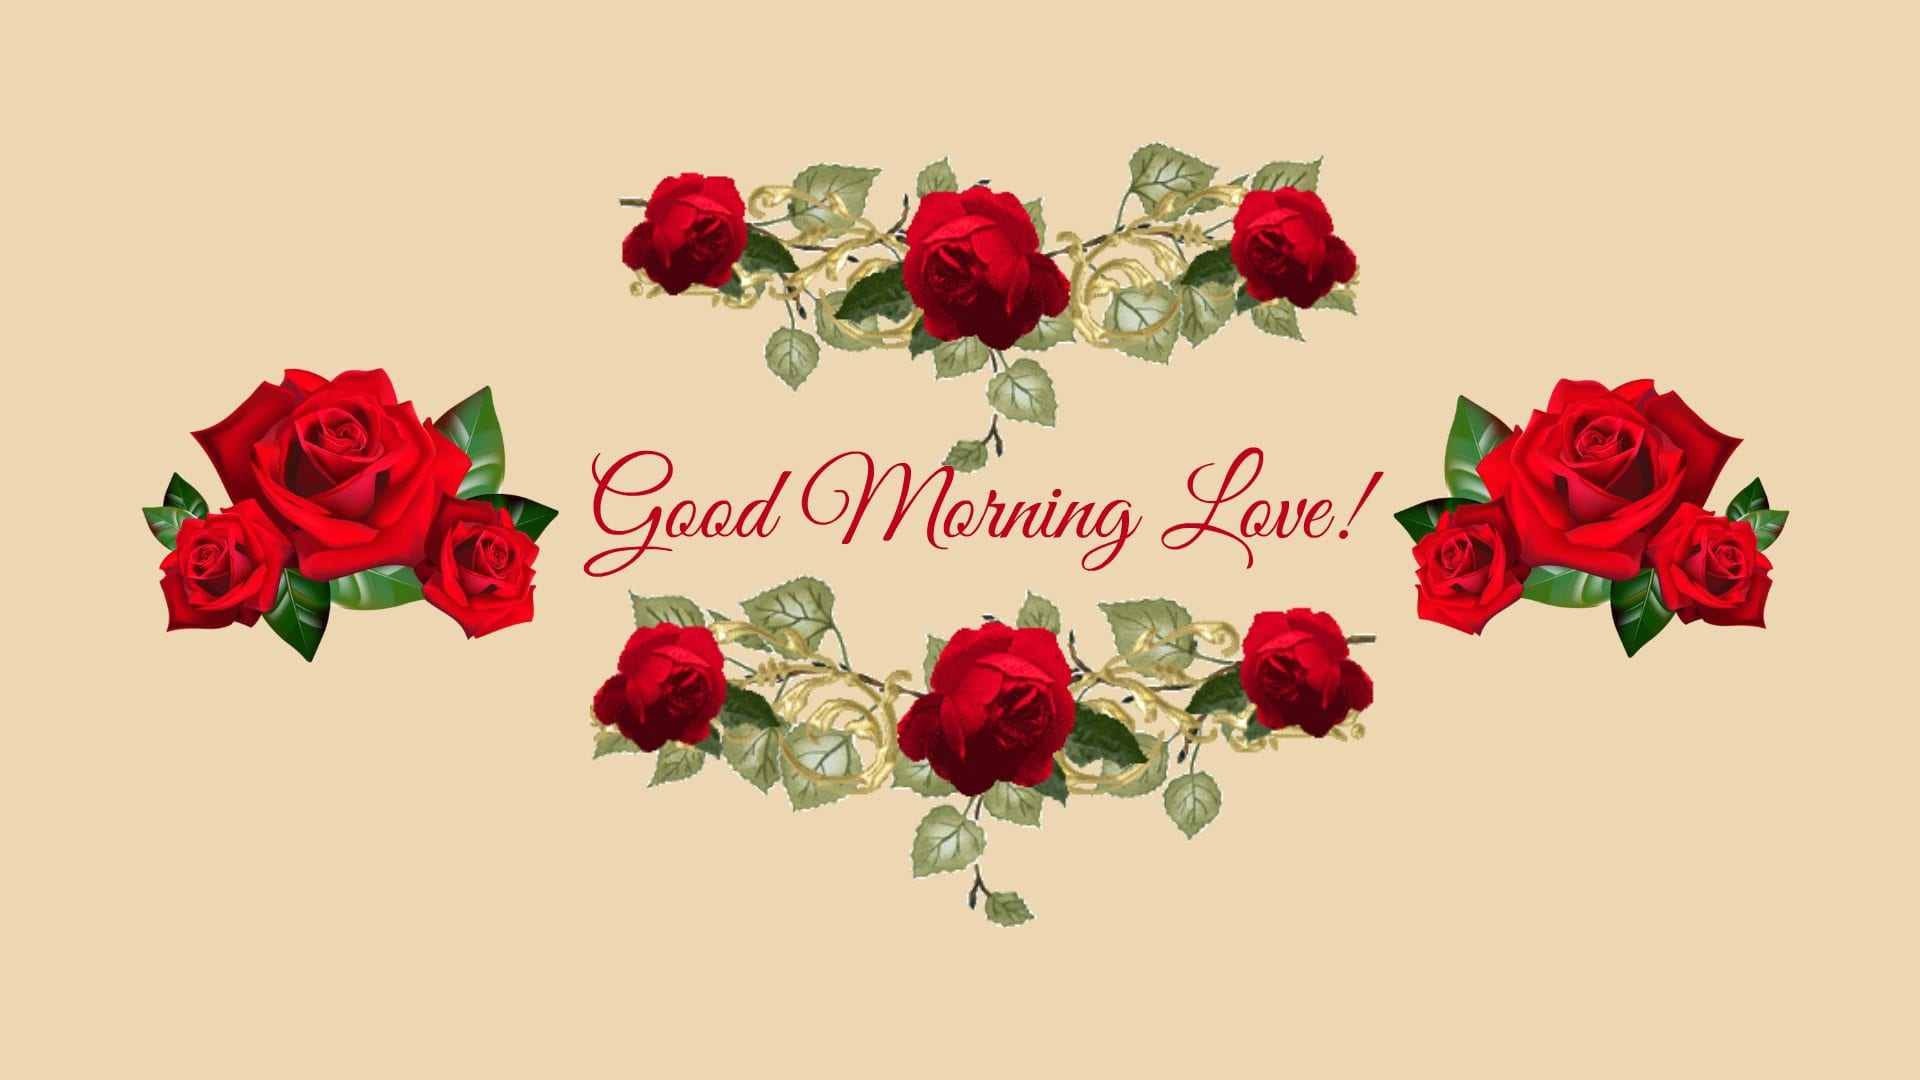 Good Morning Love Desktop Wallpaper : Good Morning Wishes Wallpapers